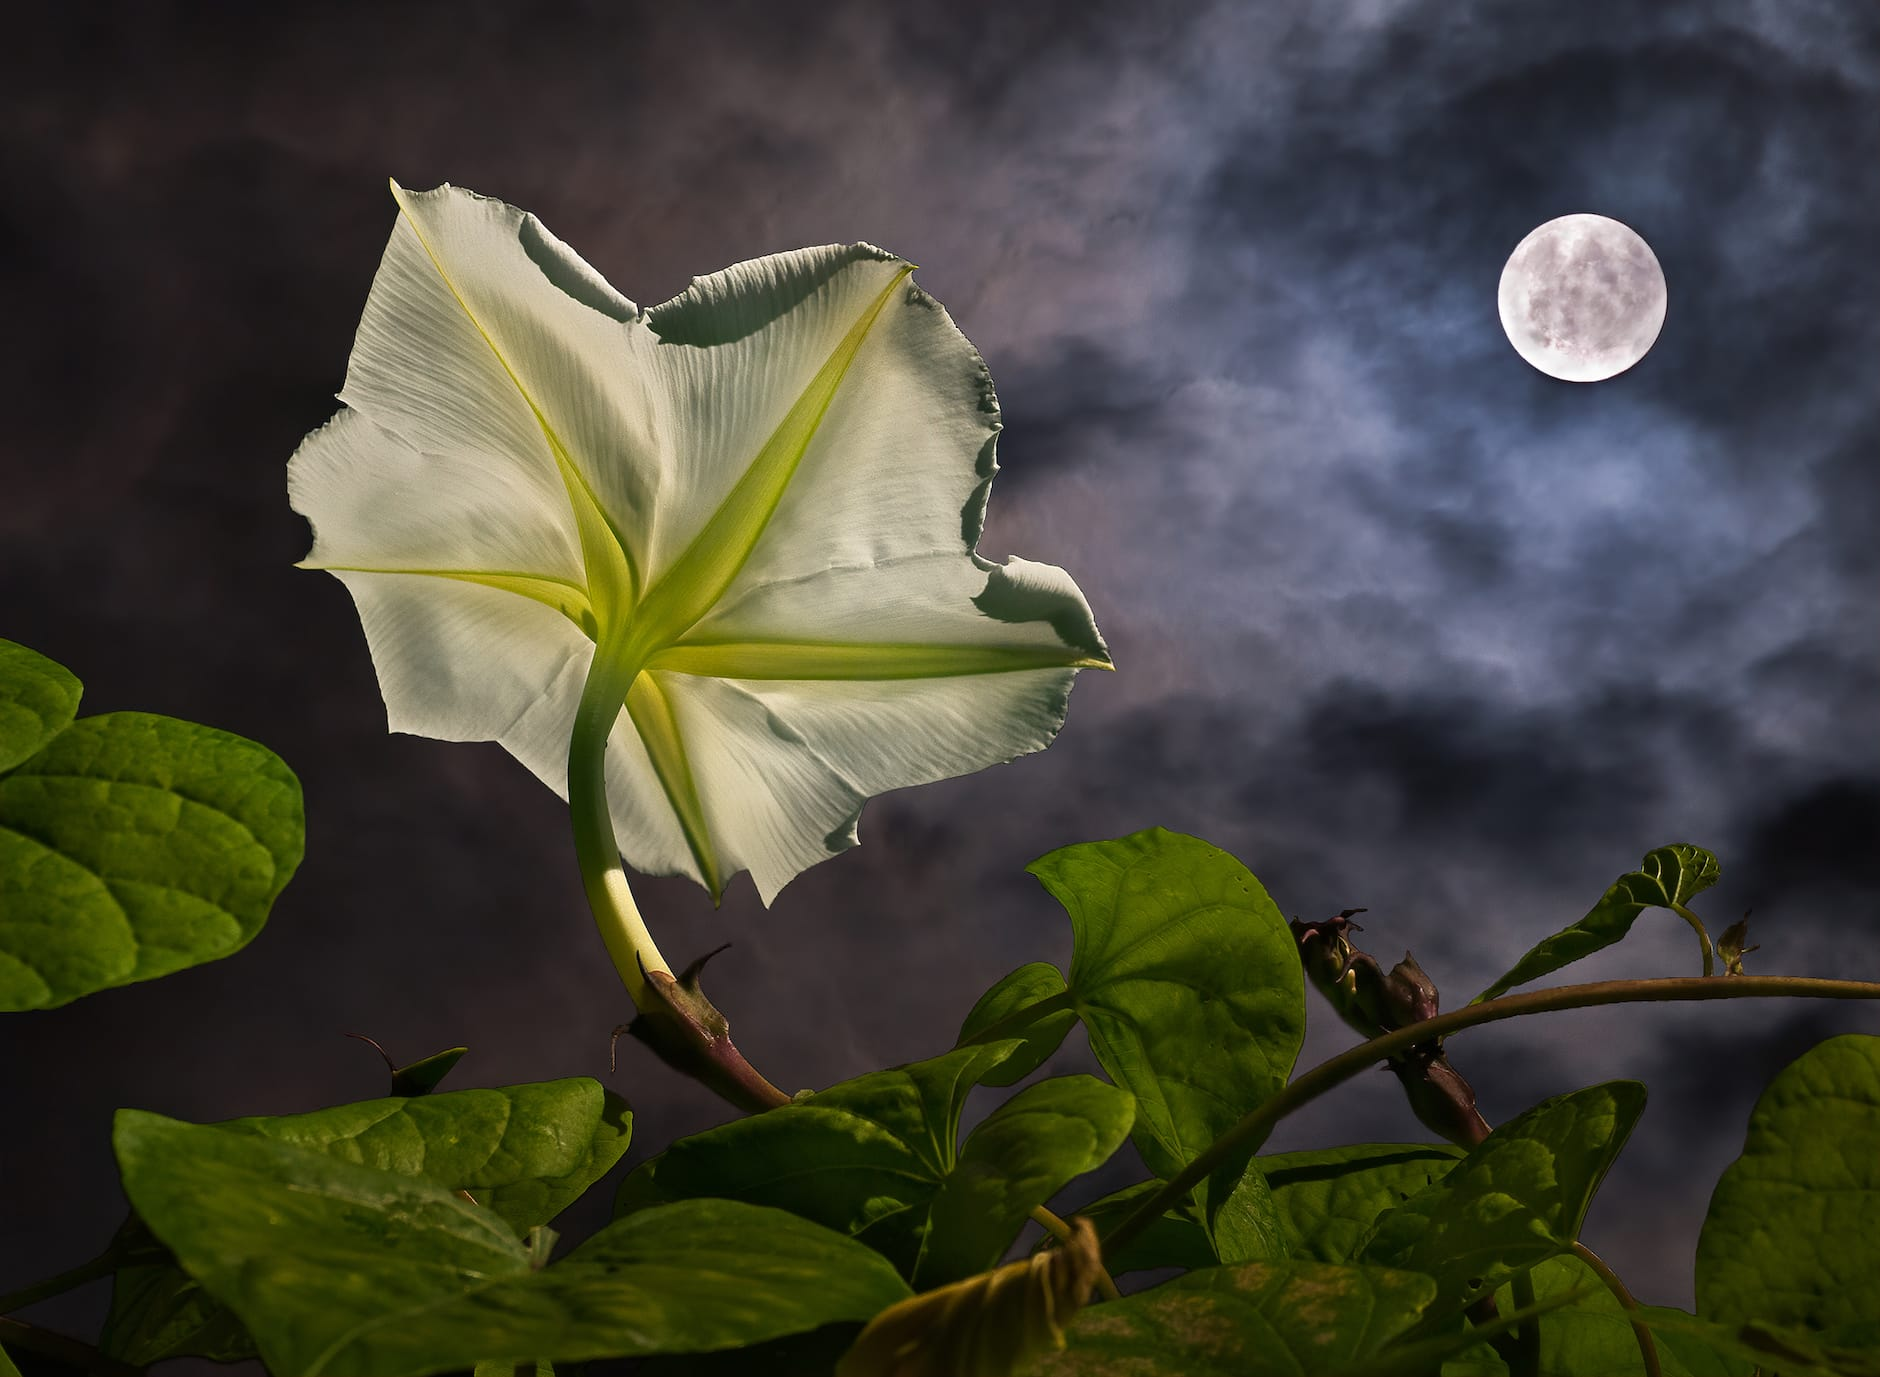 Create Your Own Magical Moon Gardenimage preview